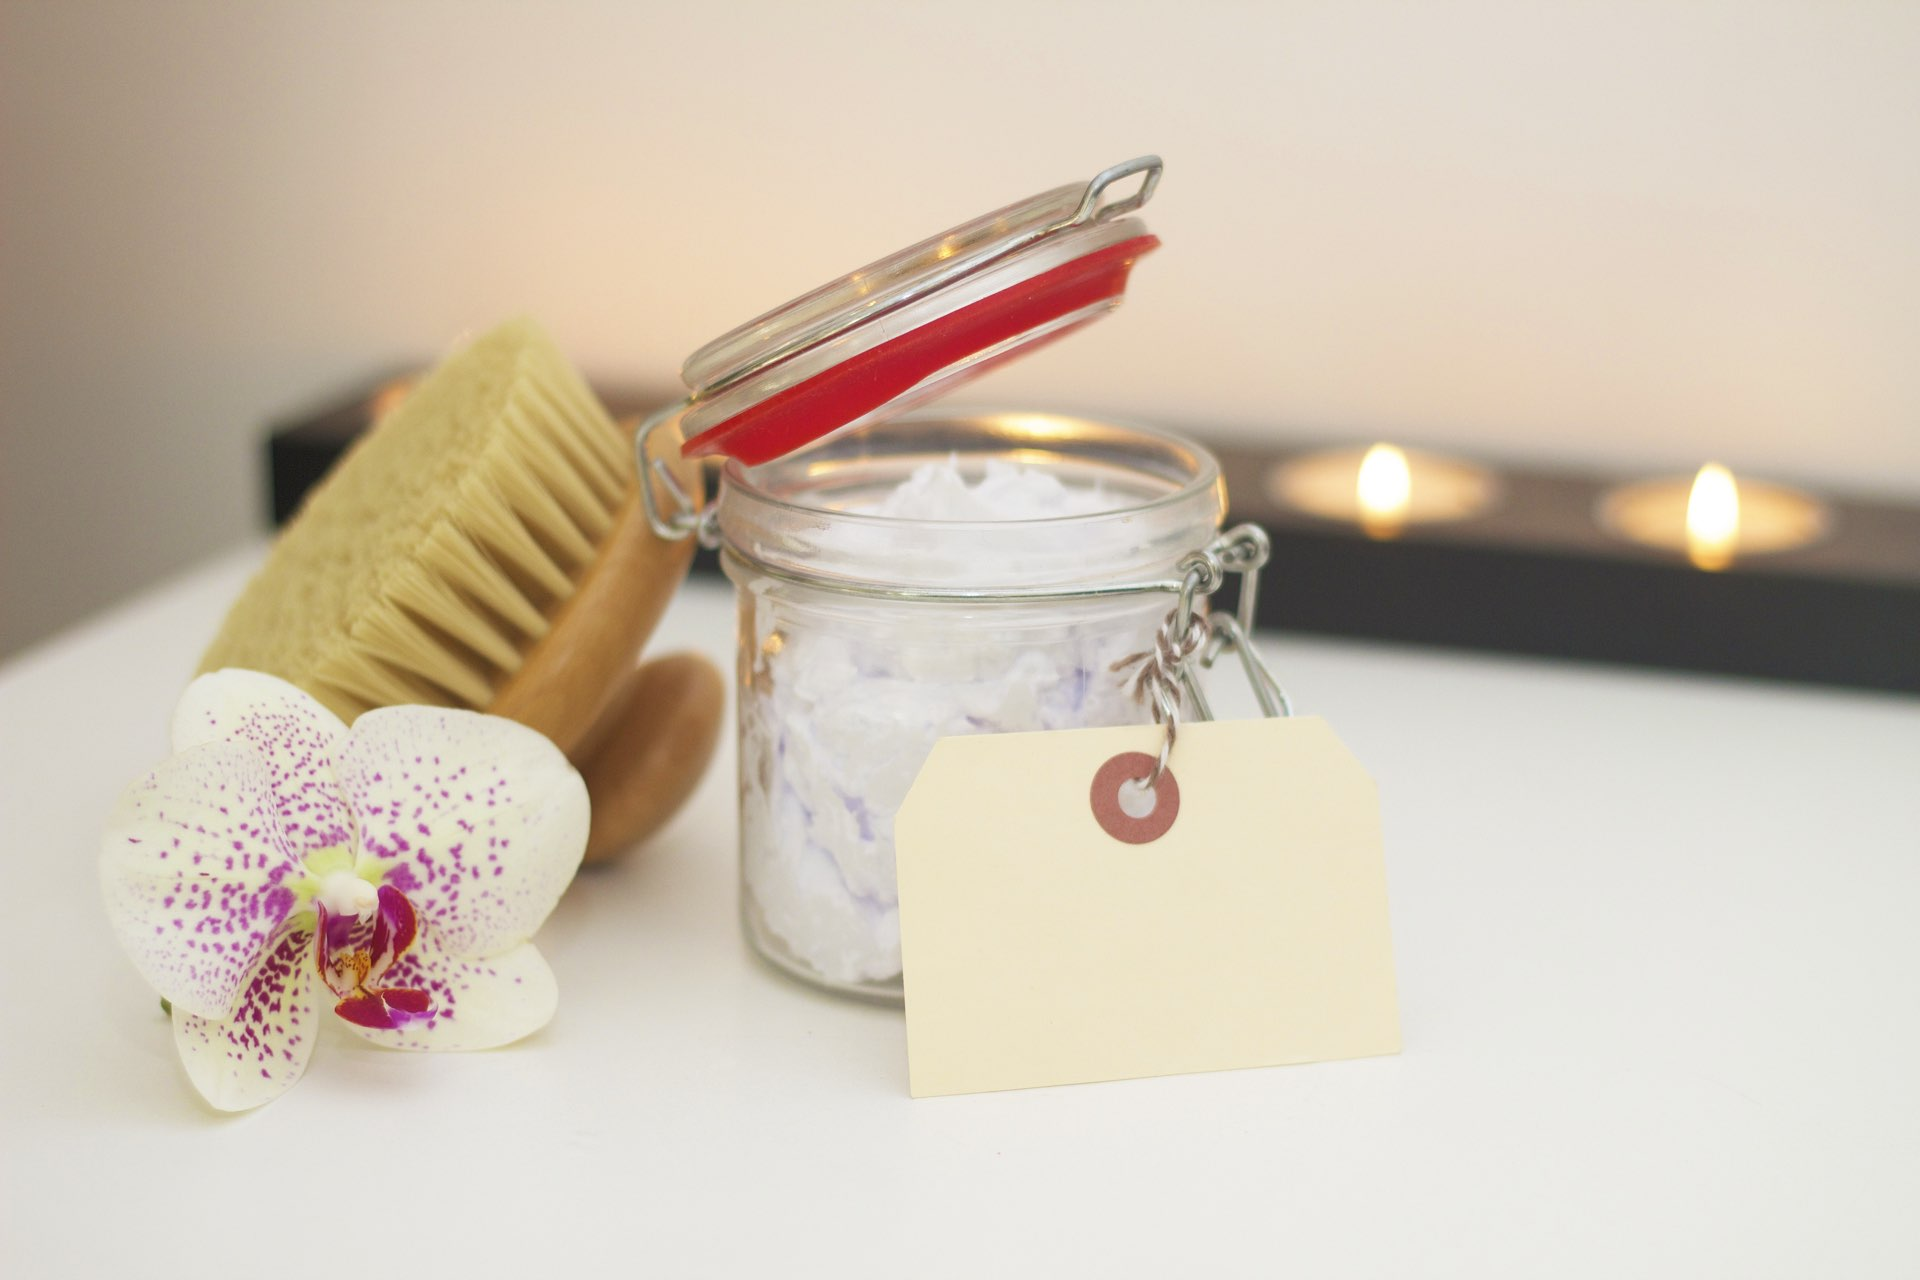 Essential Practices For Your Self Care Routine